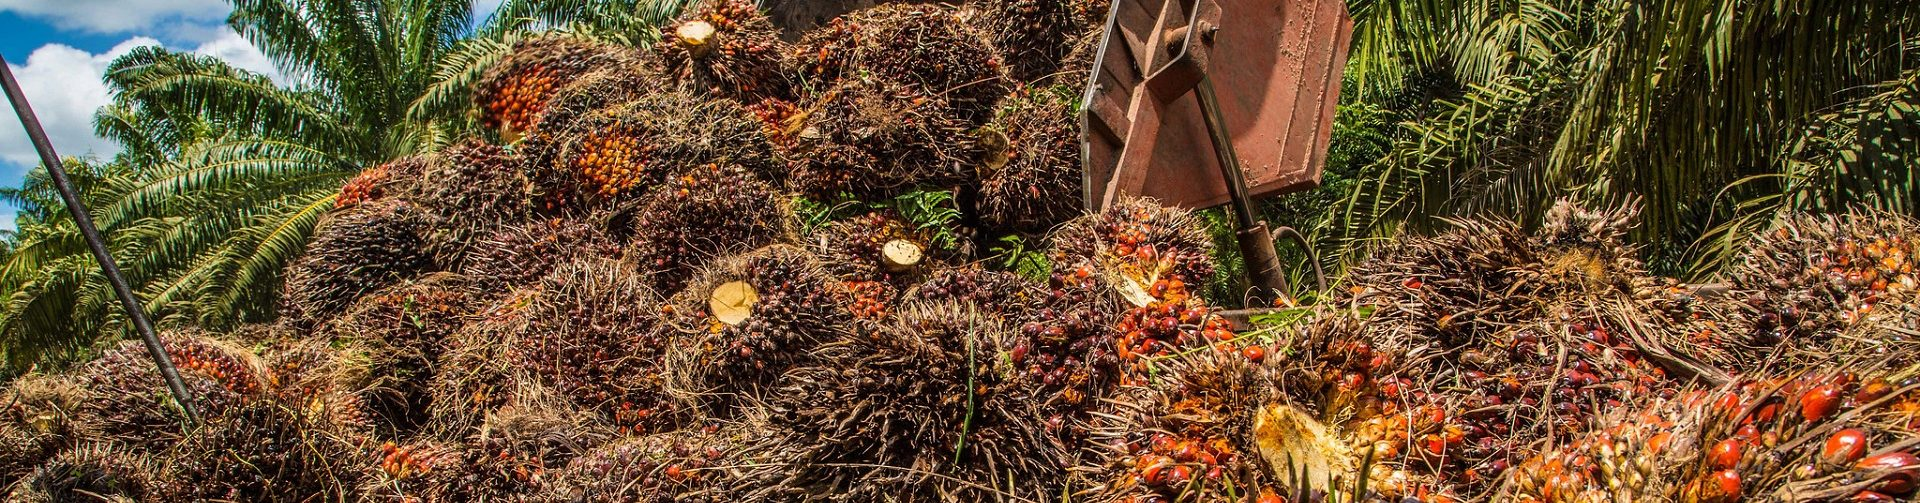 Can boosting yields slow the global palm oil expansion and ease its environmental impacts?